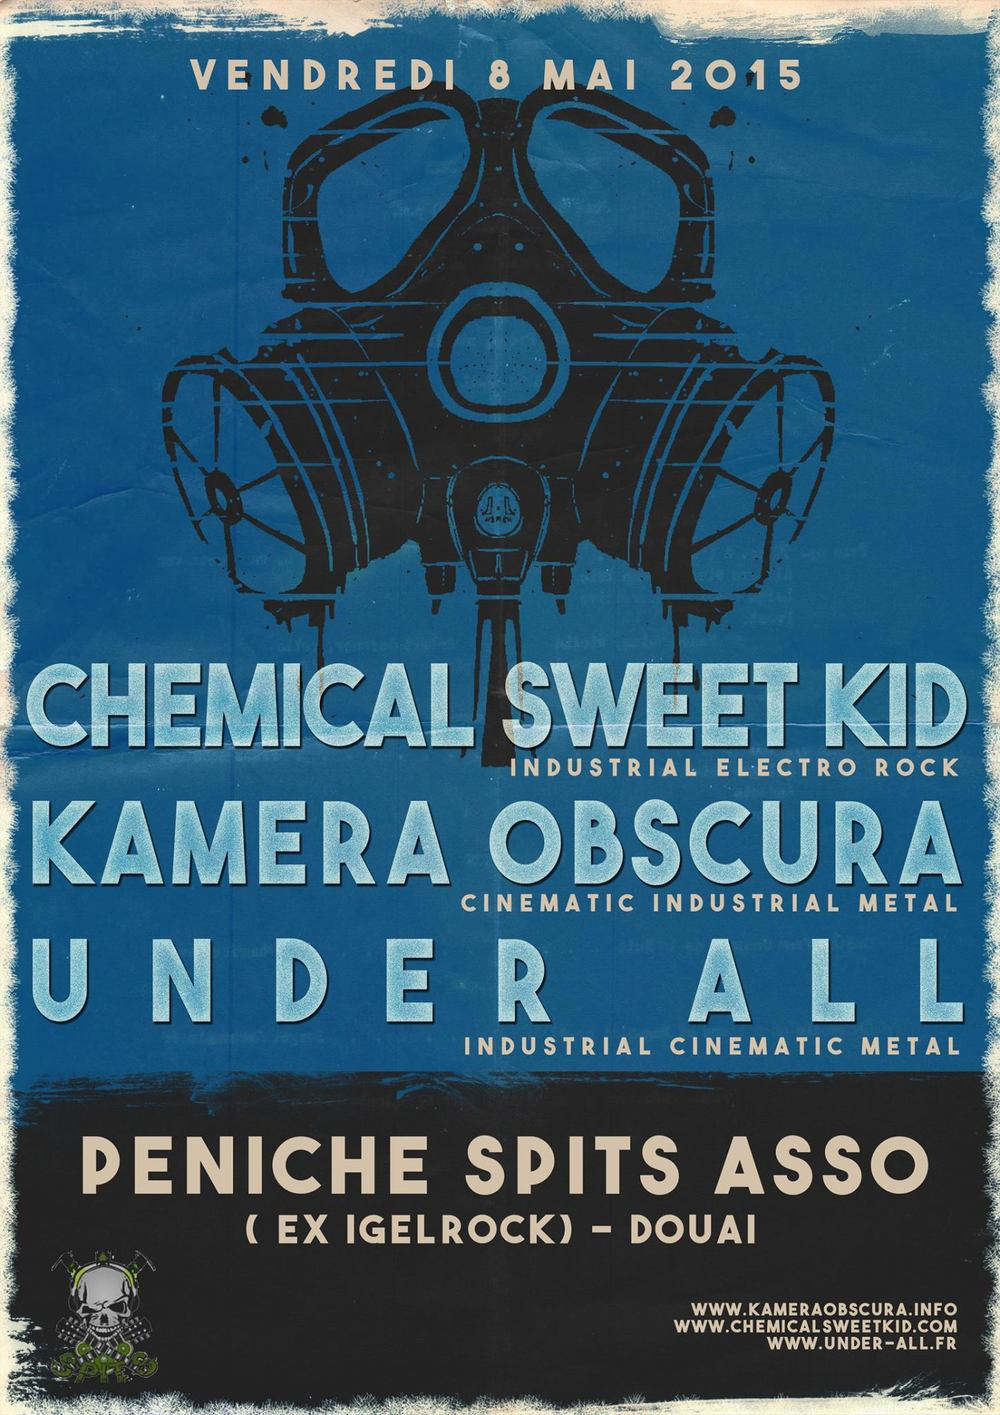 kamera_obscura_chemical_sweet_kid_under_all